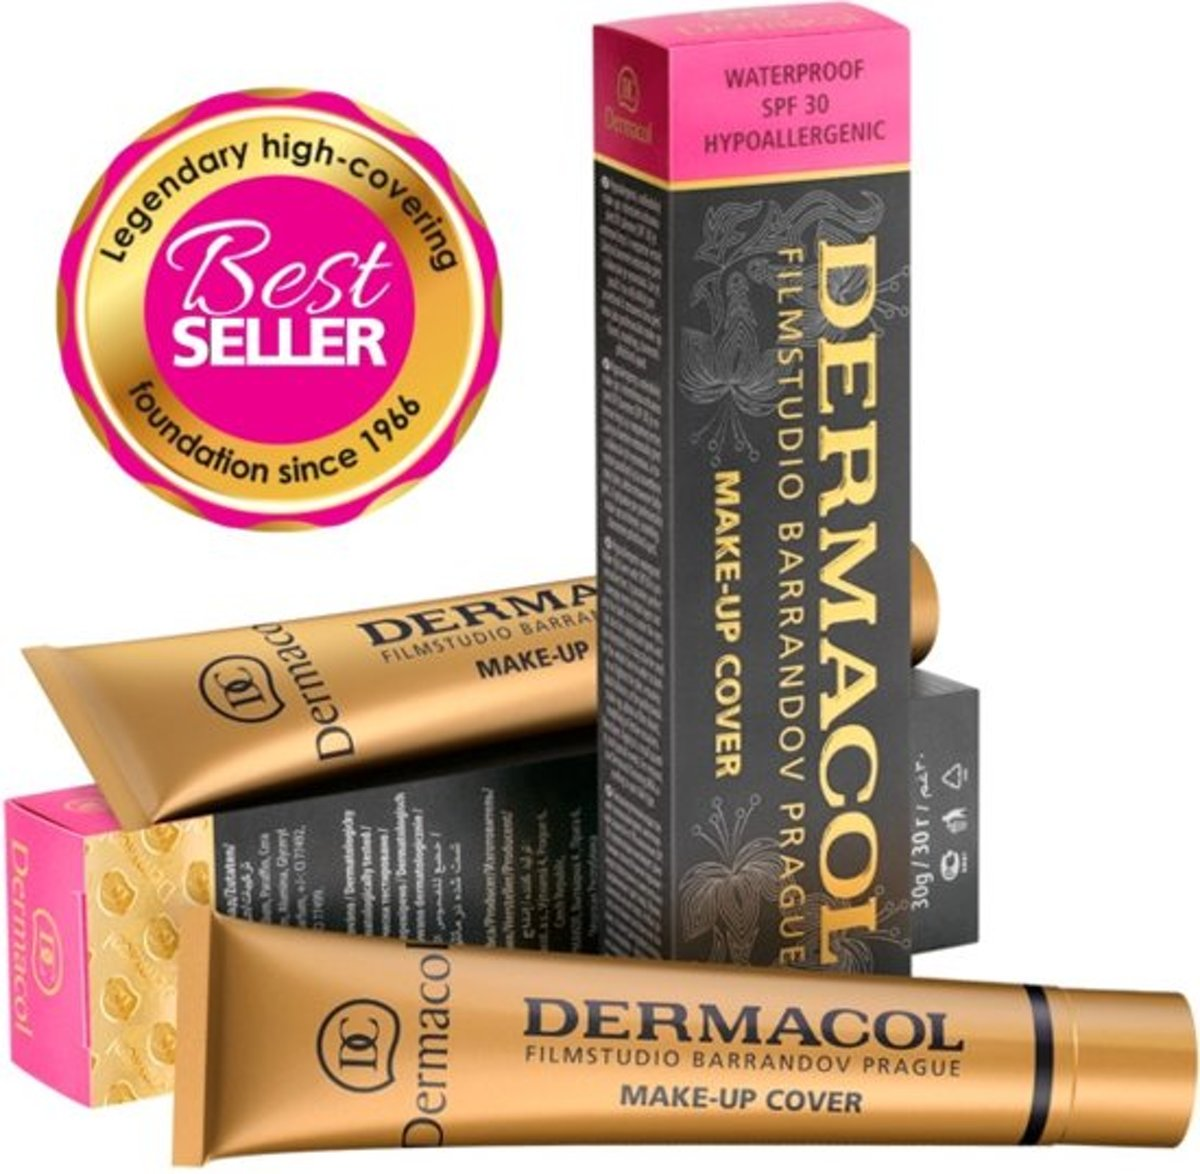 DERMACOL CAMOUFLAGE MAKE-UP COVER LEGENDARY HIGH COVERING MAKE-UP - 30 GRAM - VROUW - WATERPROOF - TINT 210